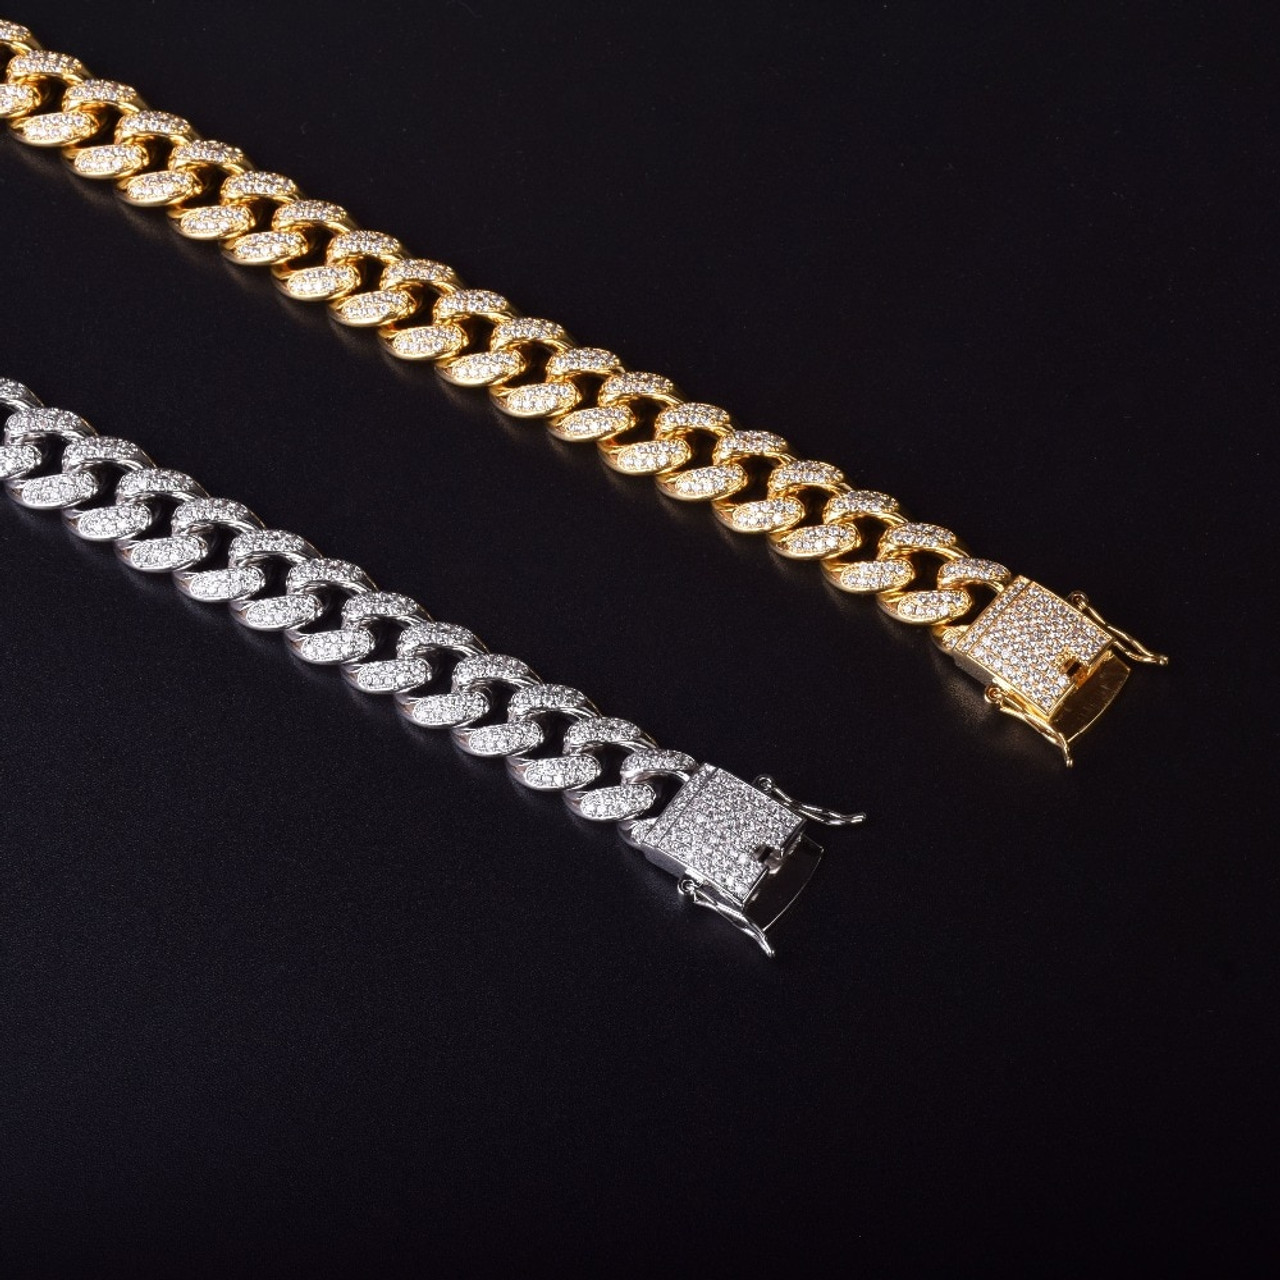 zirkonia 16 x 12 mm and filled gold chain Venezia 45 cm with carabin lock